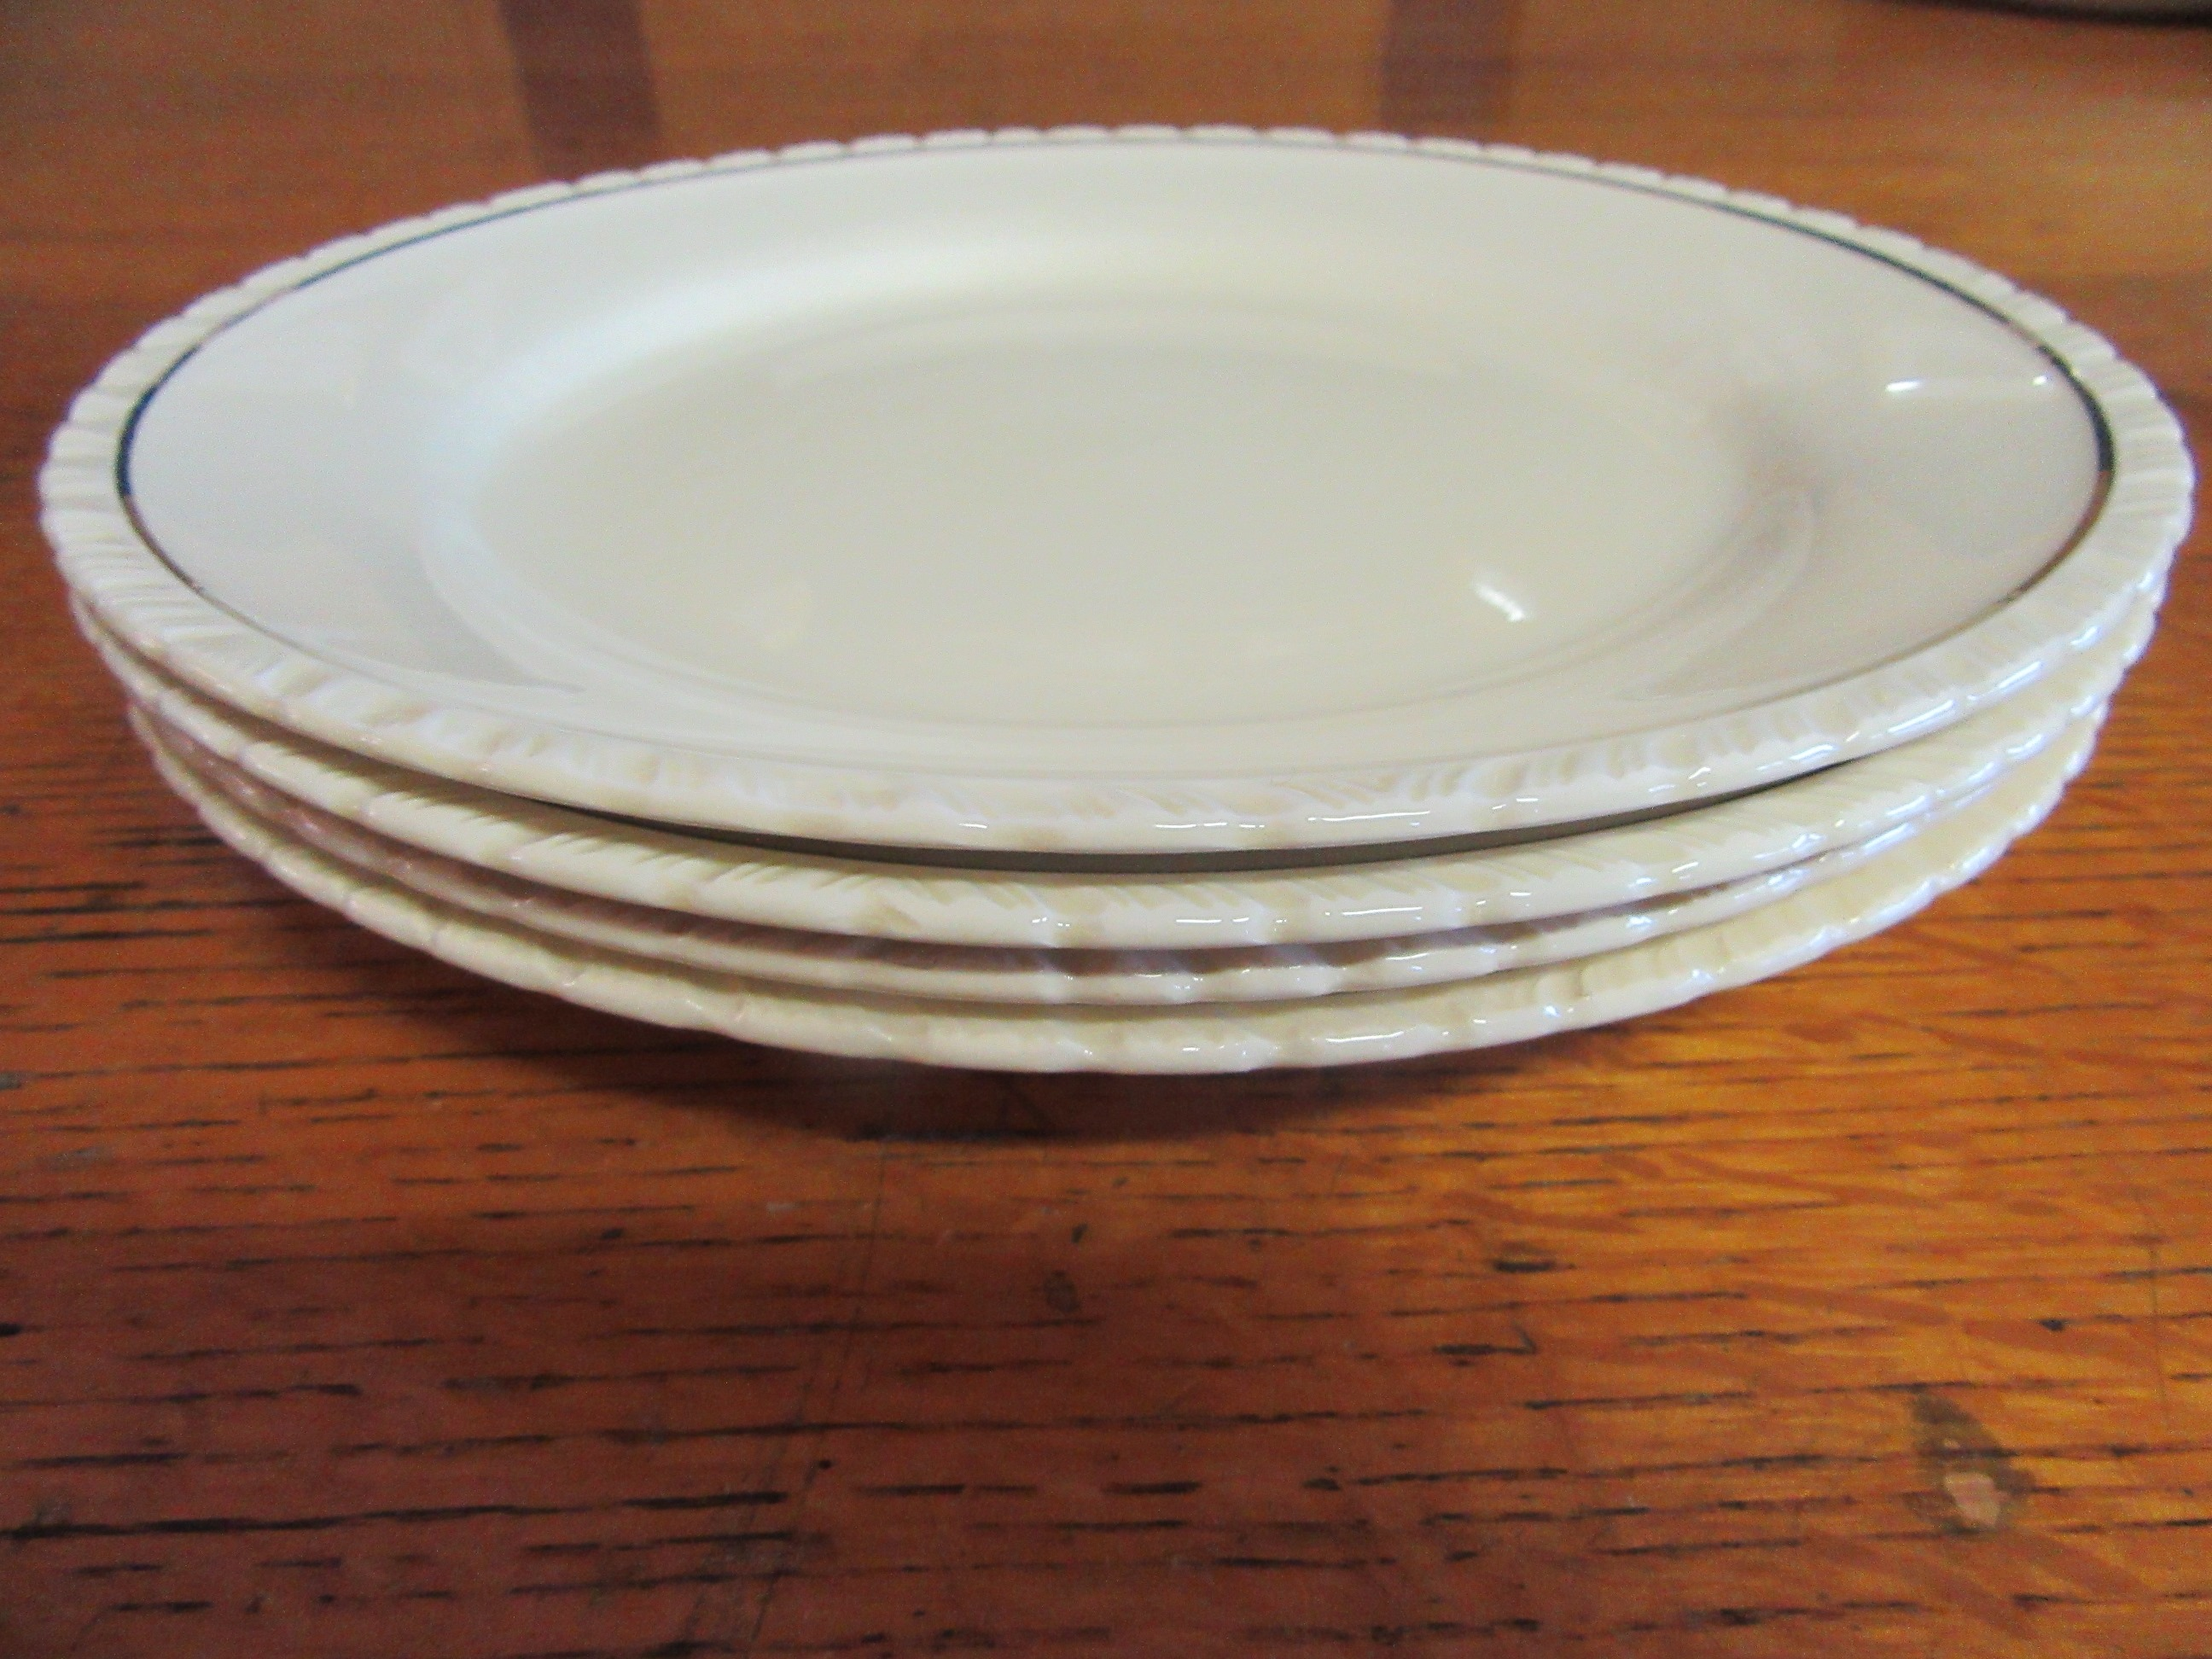 New Hall Dinner Plates Set of 4 Diana Cream+Gold 1930s Hanley England & English Pottery Industrial Commercial and Studio to the present day